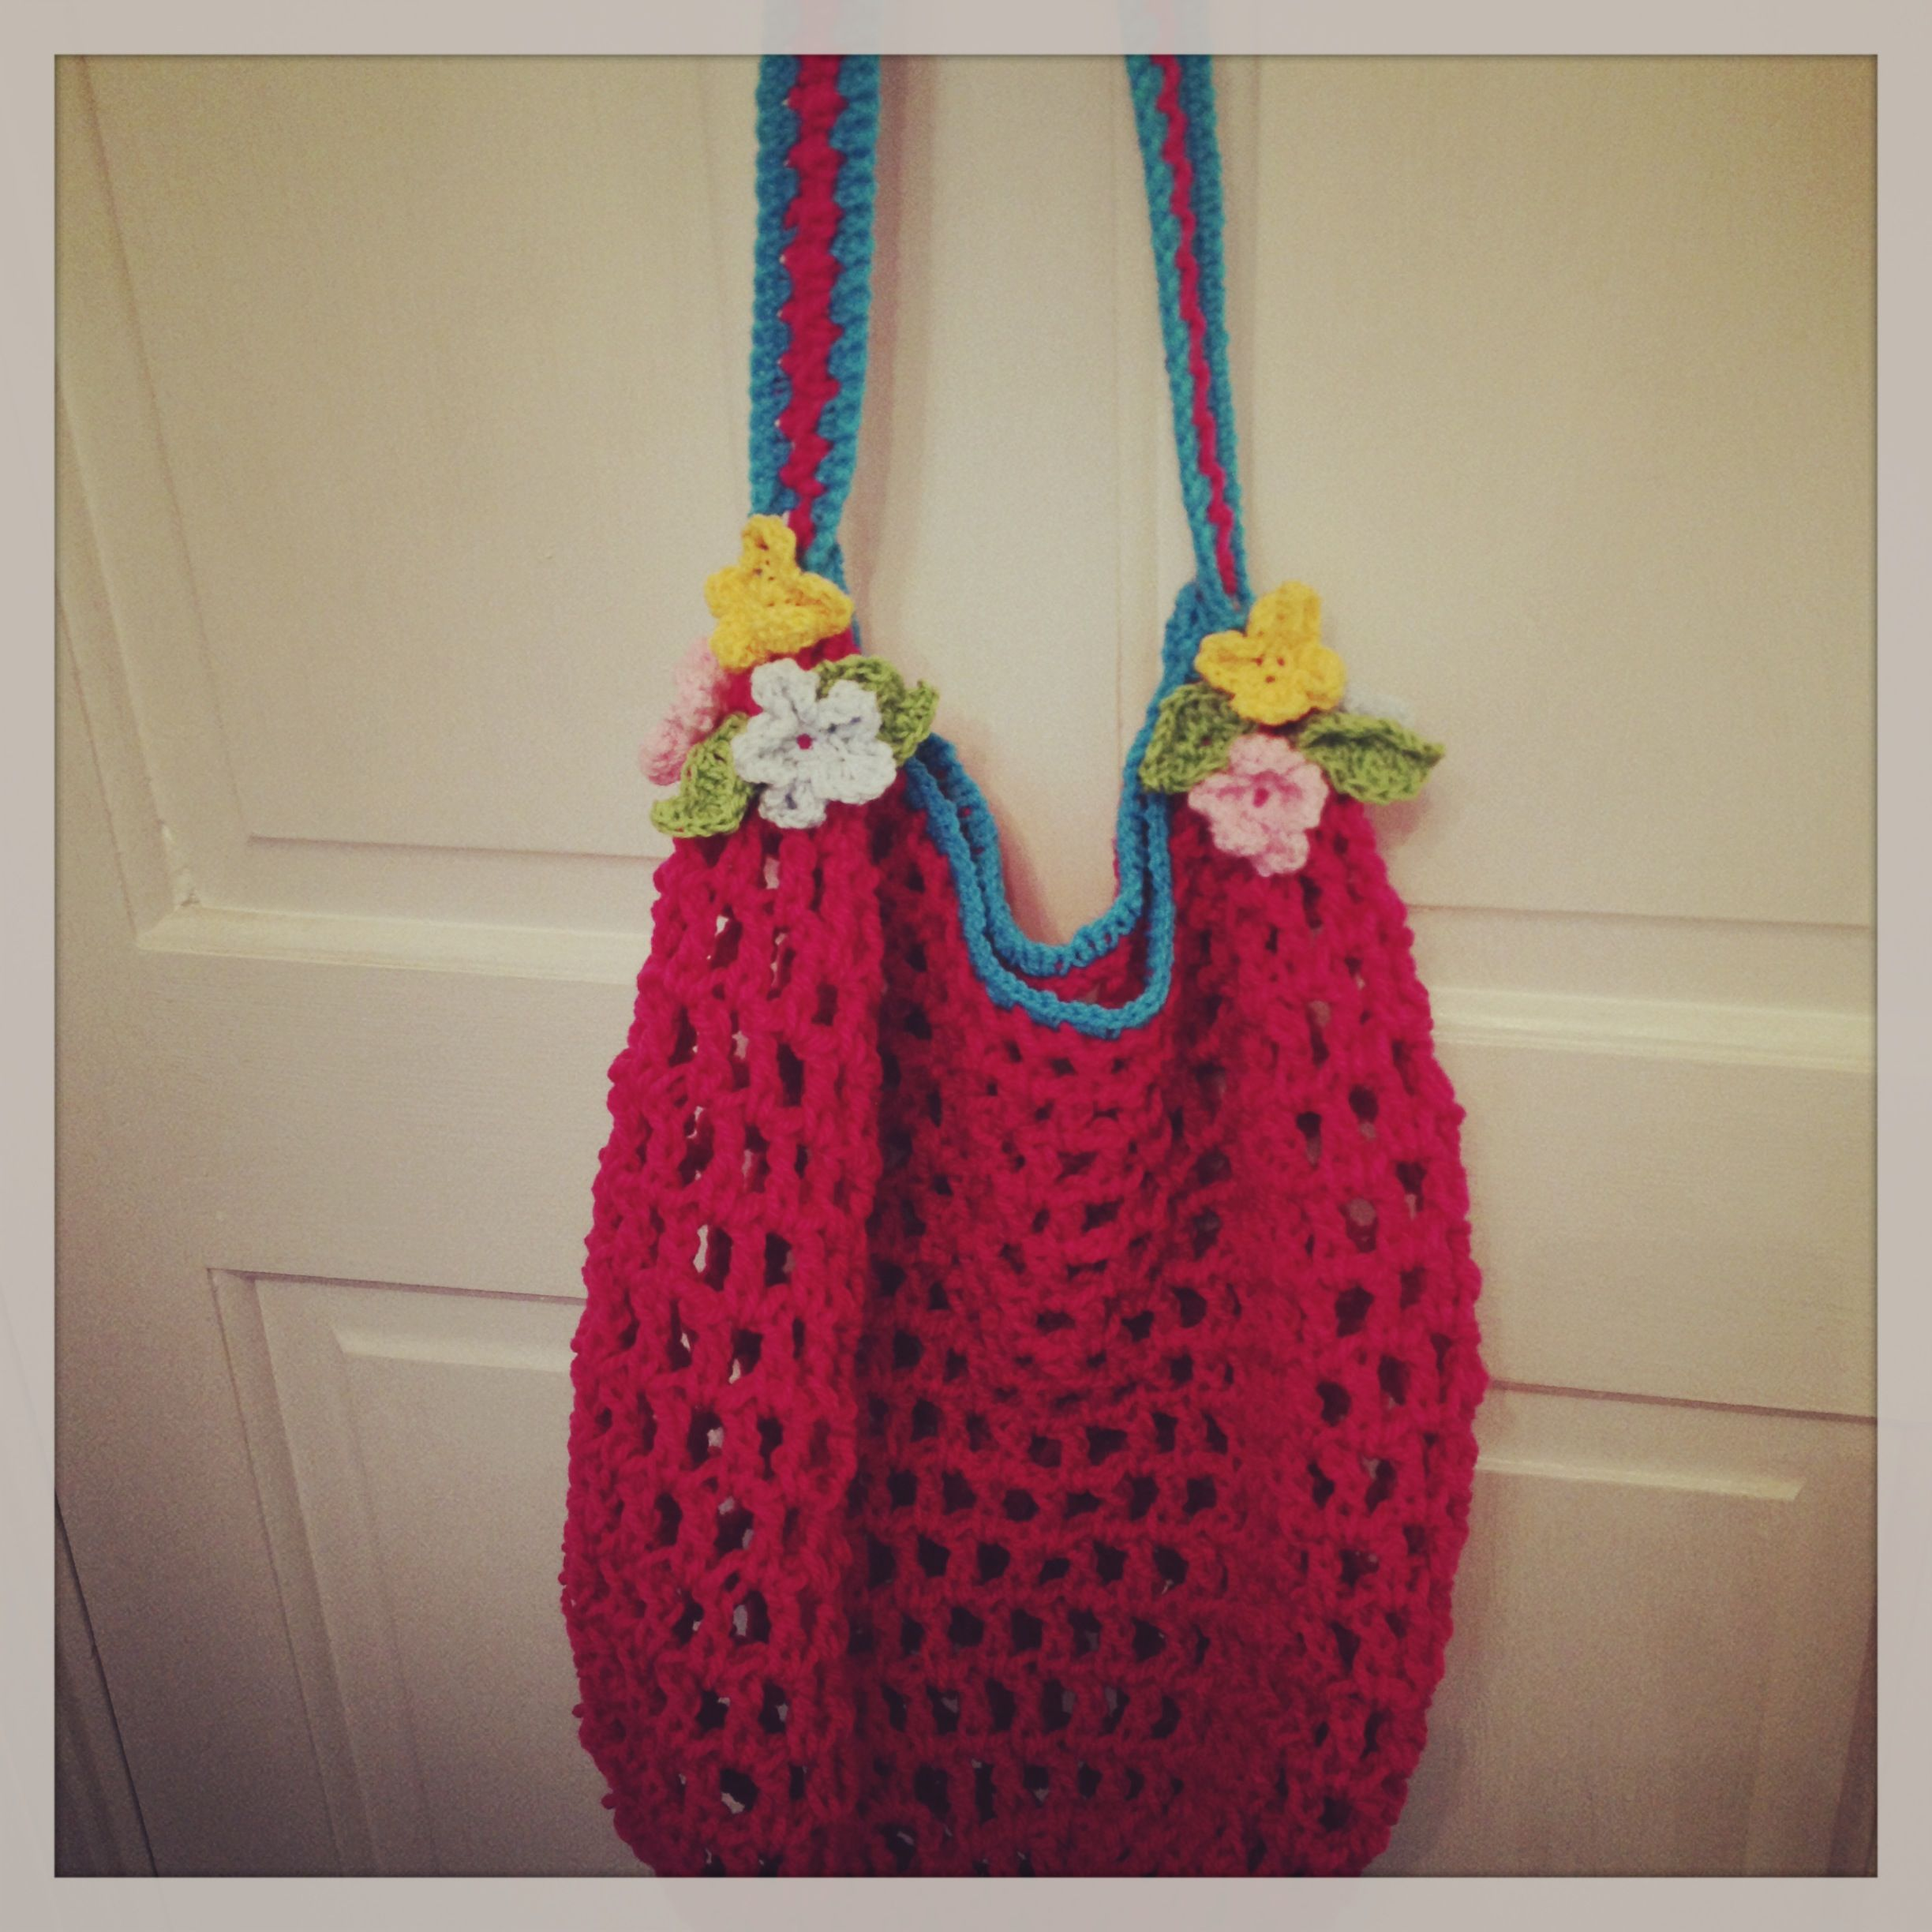 Crochet Bags Pinterest : crochet bag crochet creations Pinterest